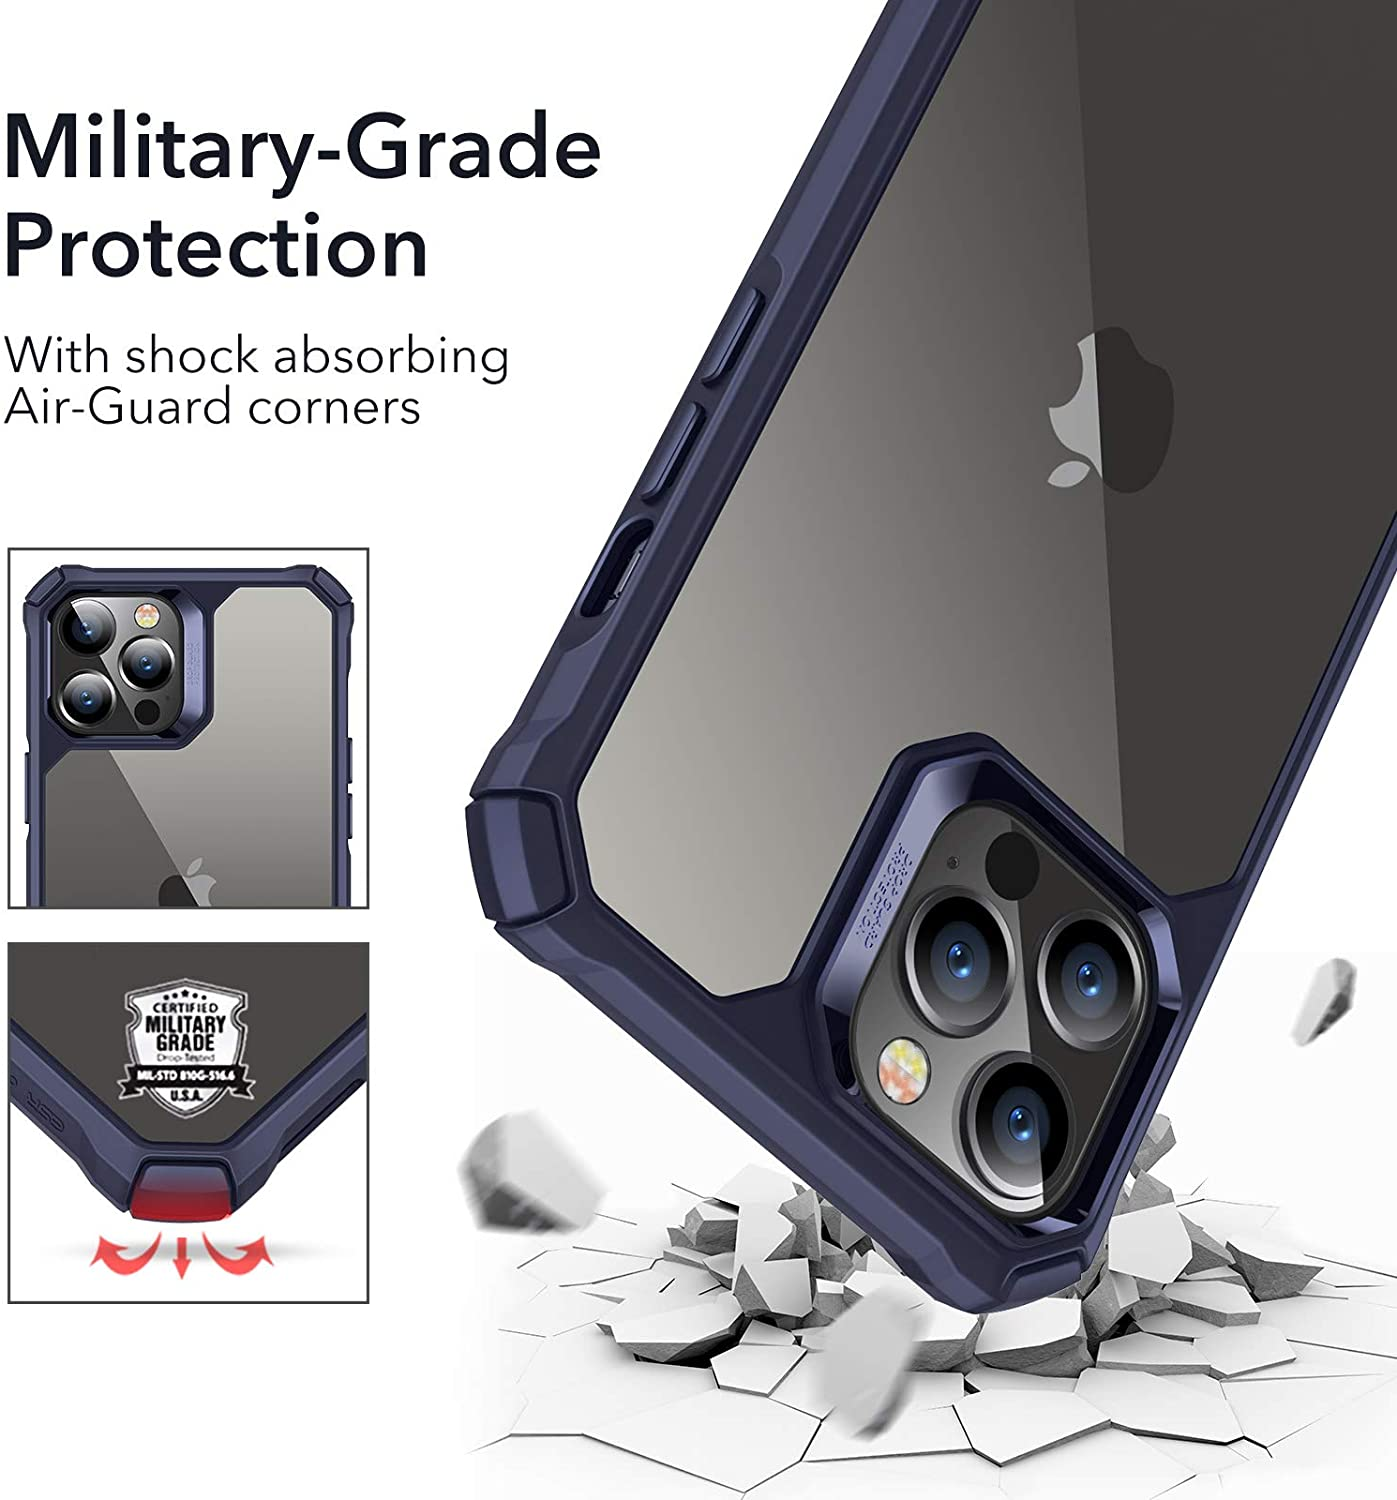 Hard Polycarbonate Shock-Absorbing Scratch-Resistant Military Grade Protection Flexible Polymer Frame for iPhone 6.1 Translucent Black ESR Air Armor Designed for iPhone 12 Case//12 Pro Case